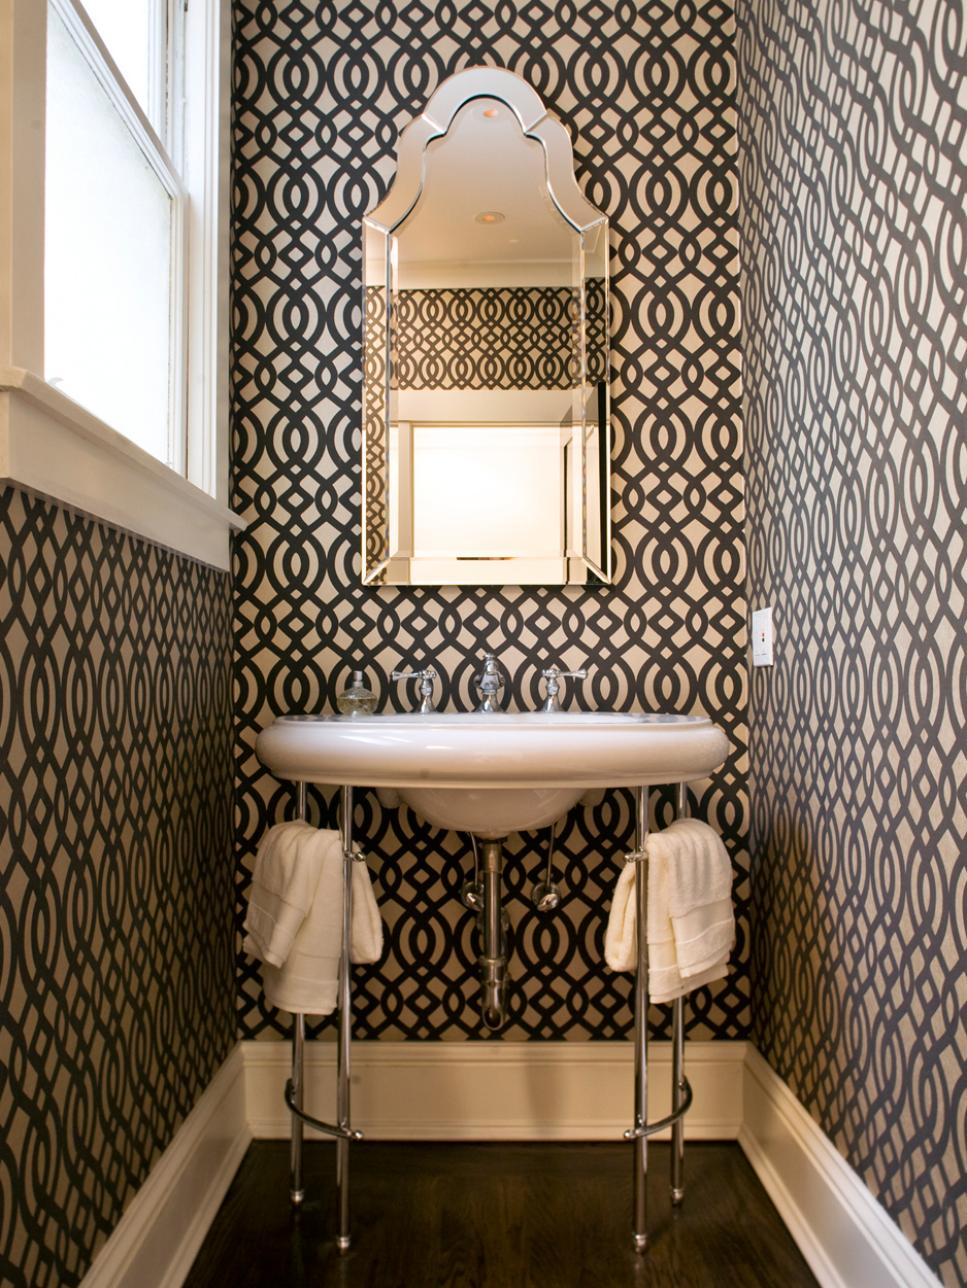 20 small bathroom design ideas hgtv - Small Bathroom Tile Ideas Designs